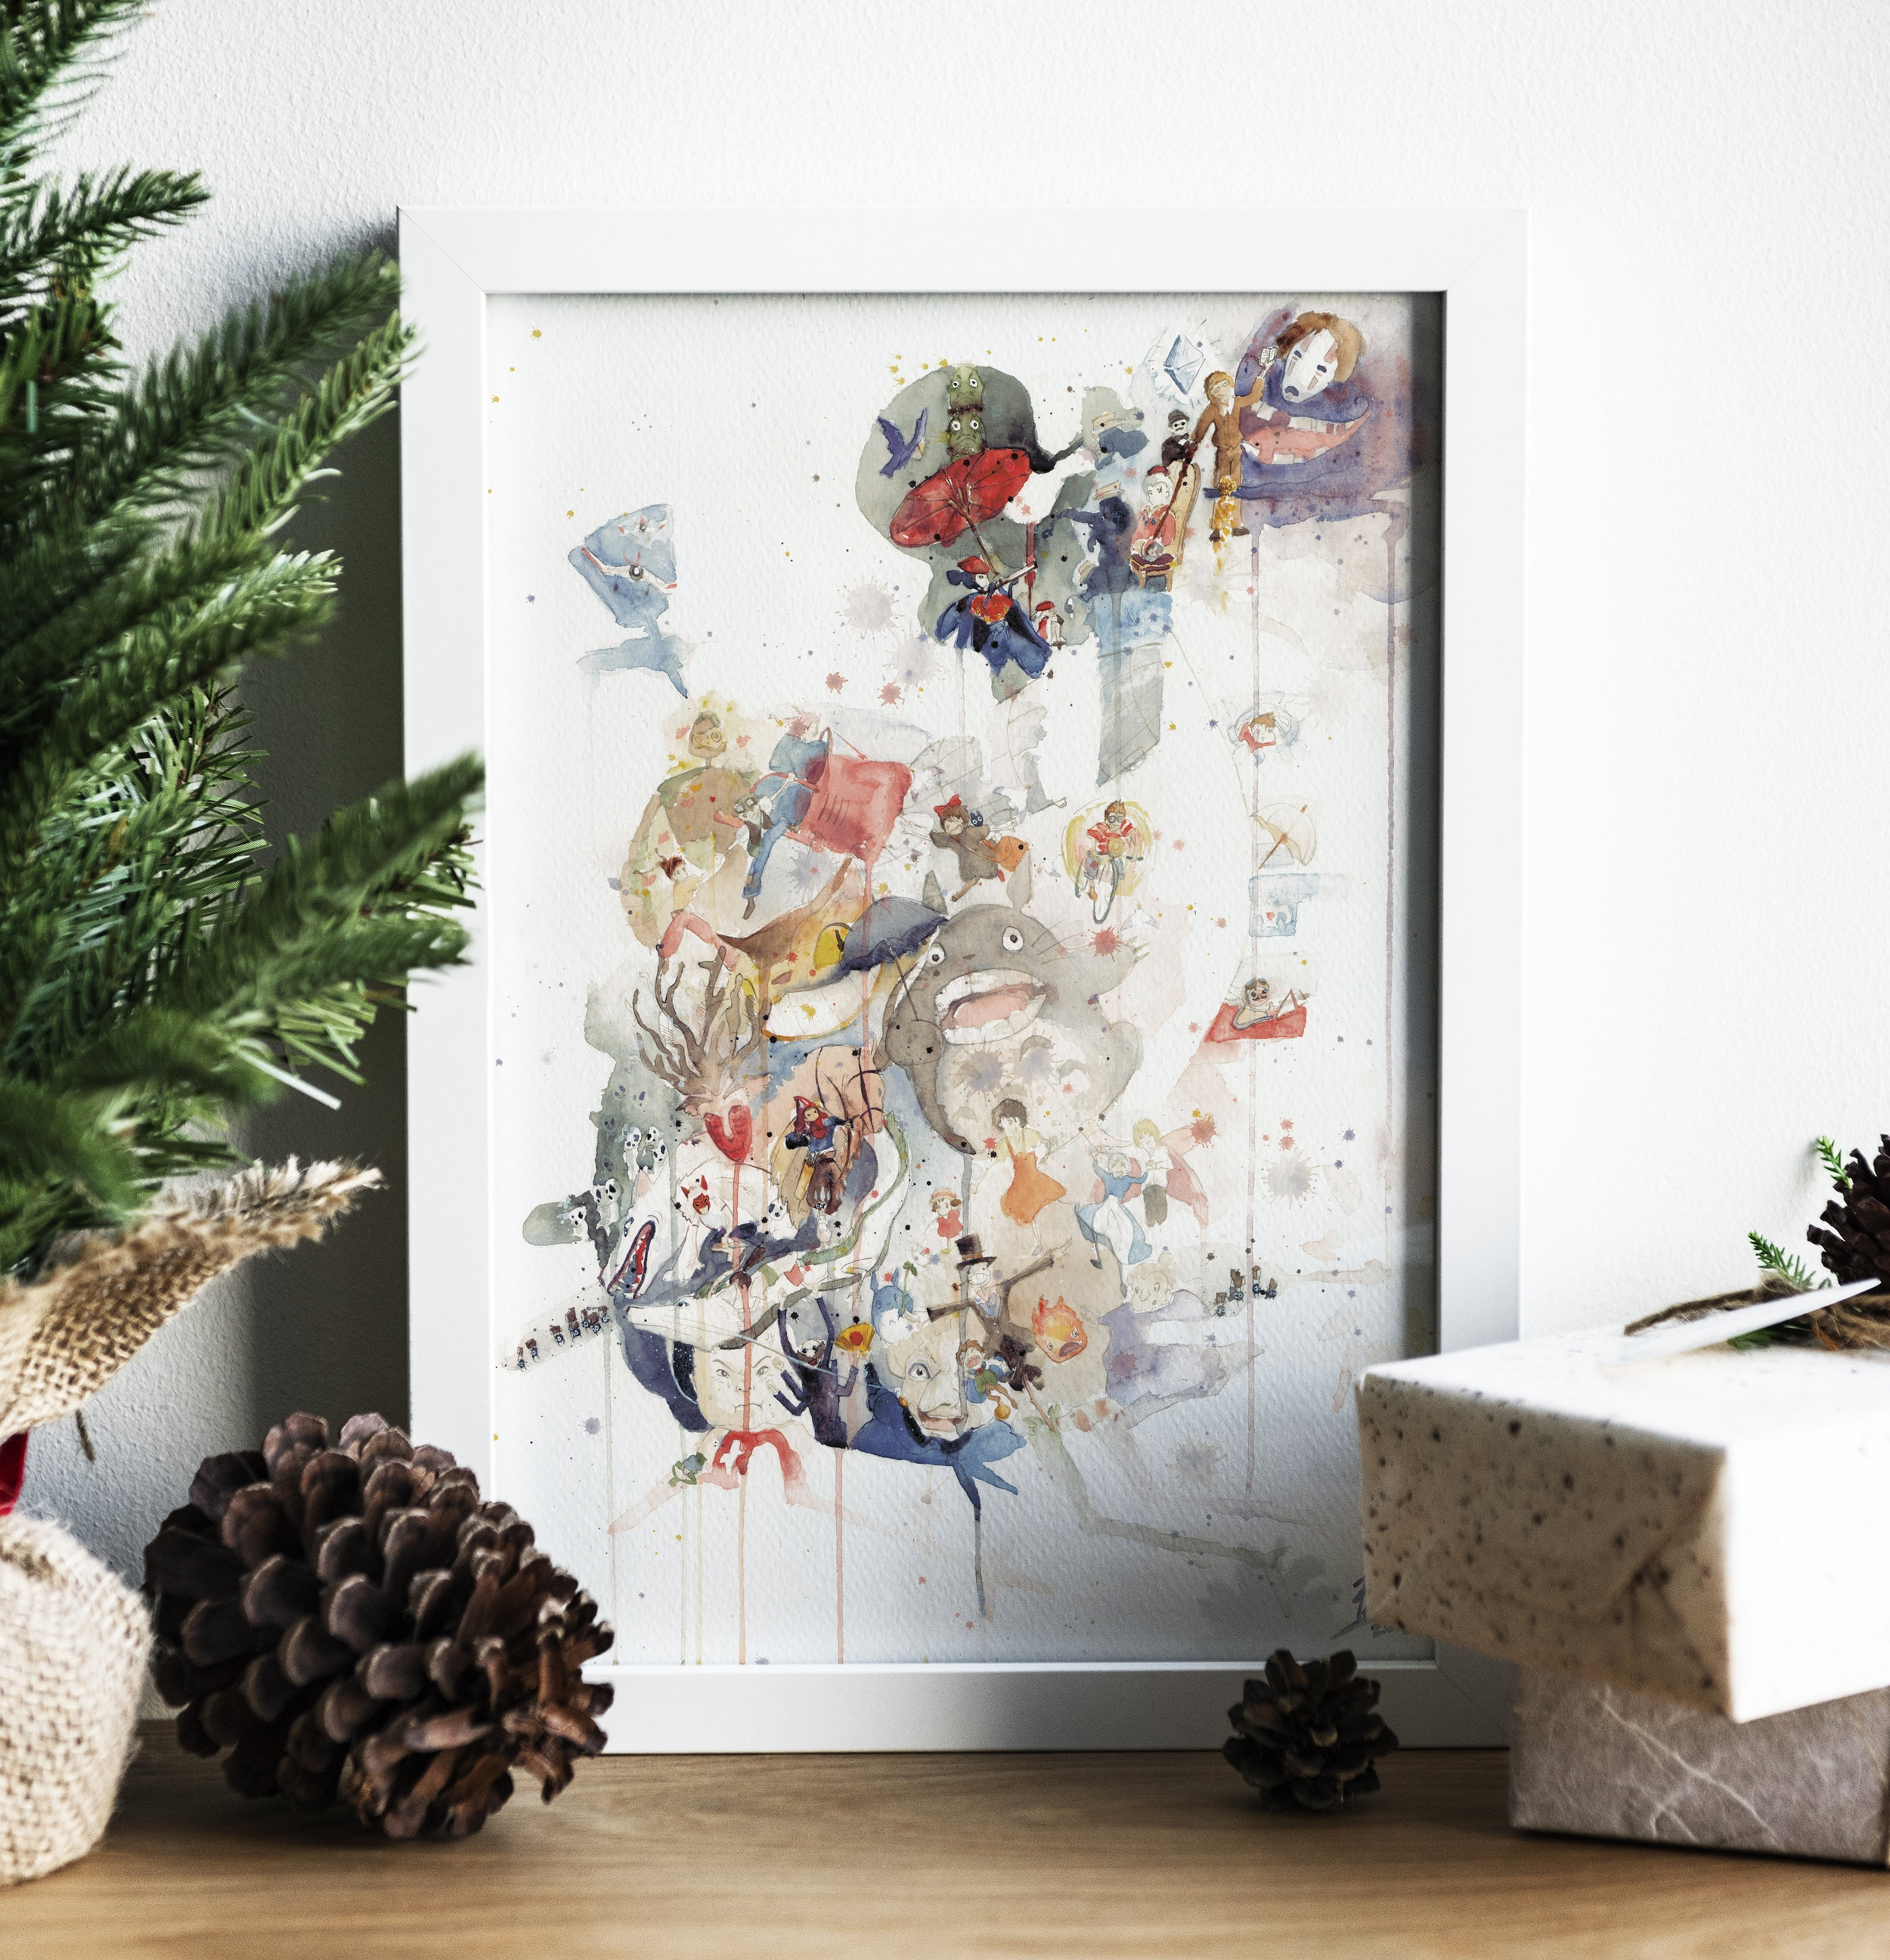 """Watercolor Ghibli Print starting at $25  HERE   FUN FACT: This painting is one of the few painted in an 18 x 24"""" size. It took over 80+ hours of planning, prep, and execution. It's also in the silhouette of Howl's Moving Castle!"""